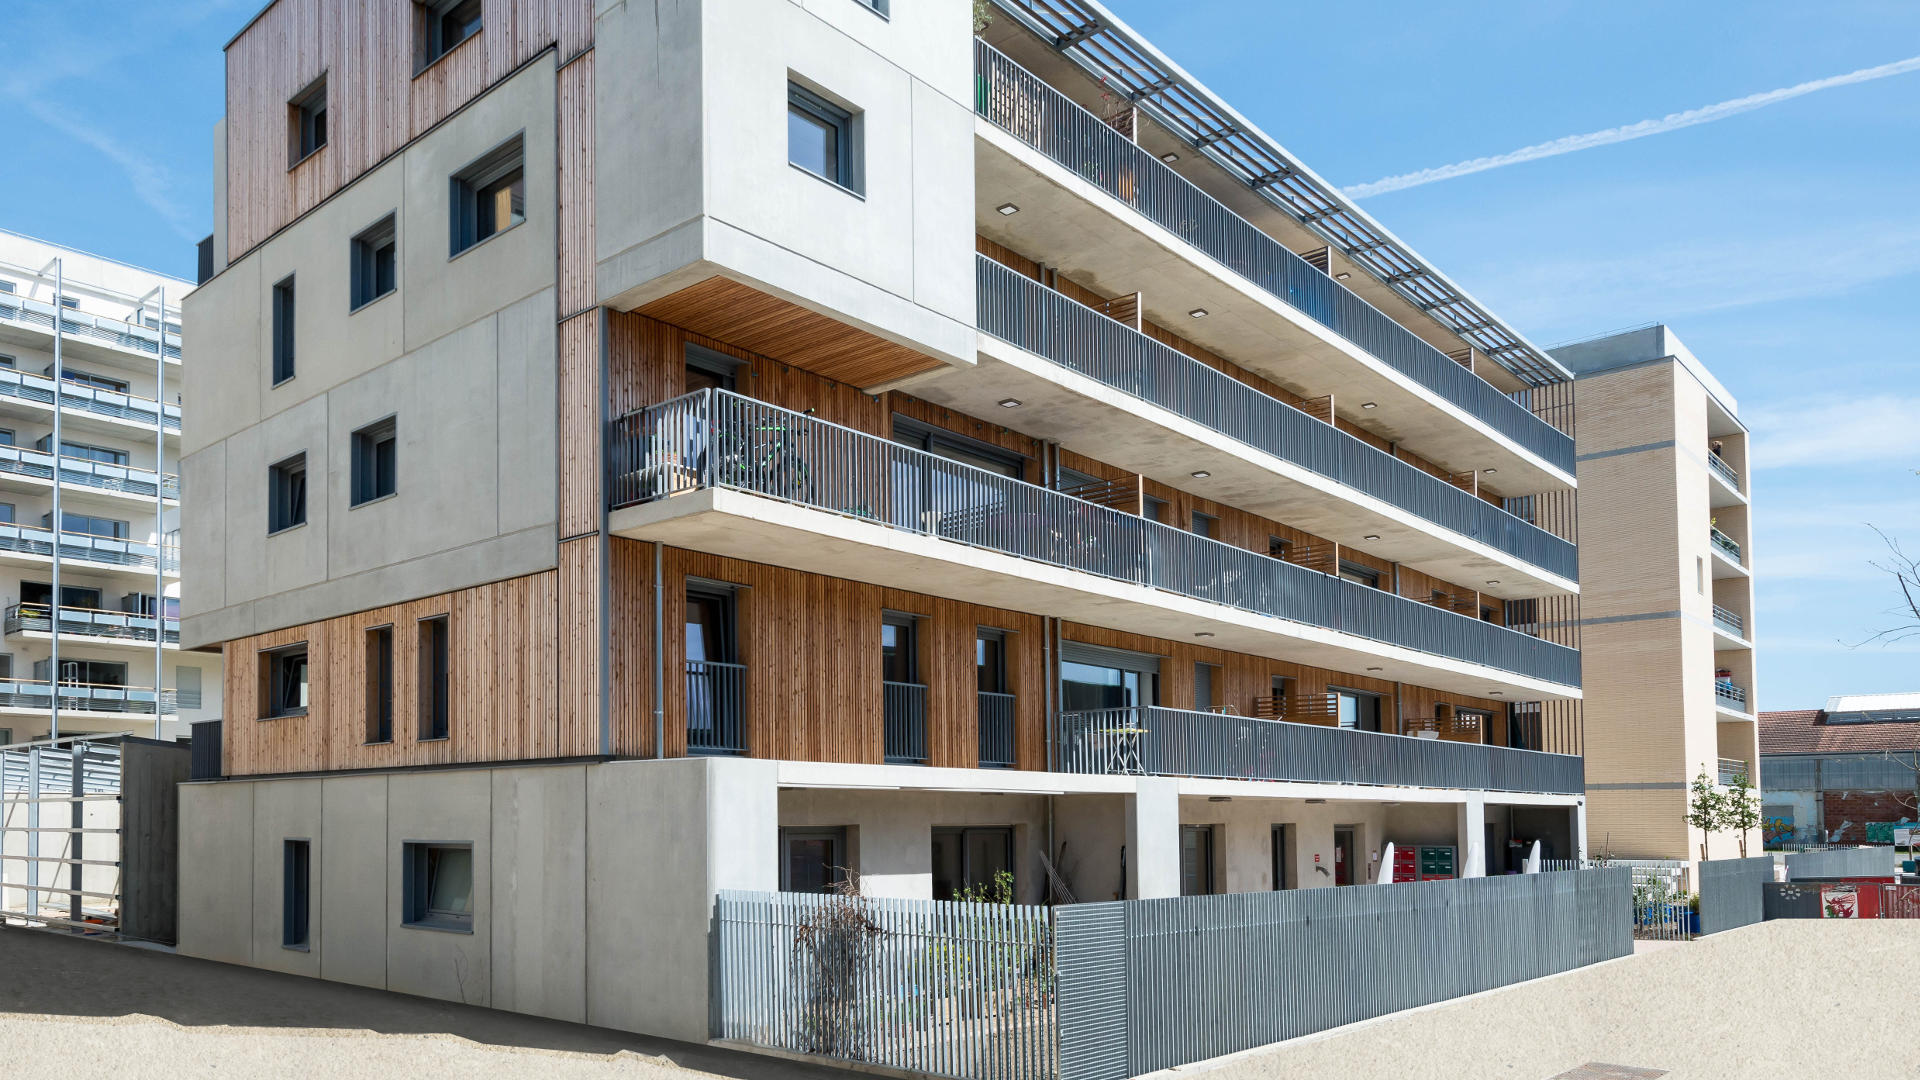 Seuil-architecture-Abricoop-facade-sud-slid